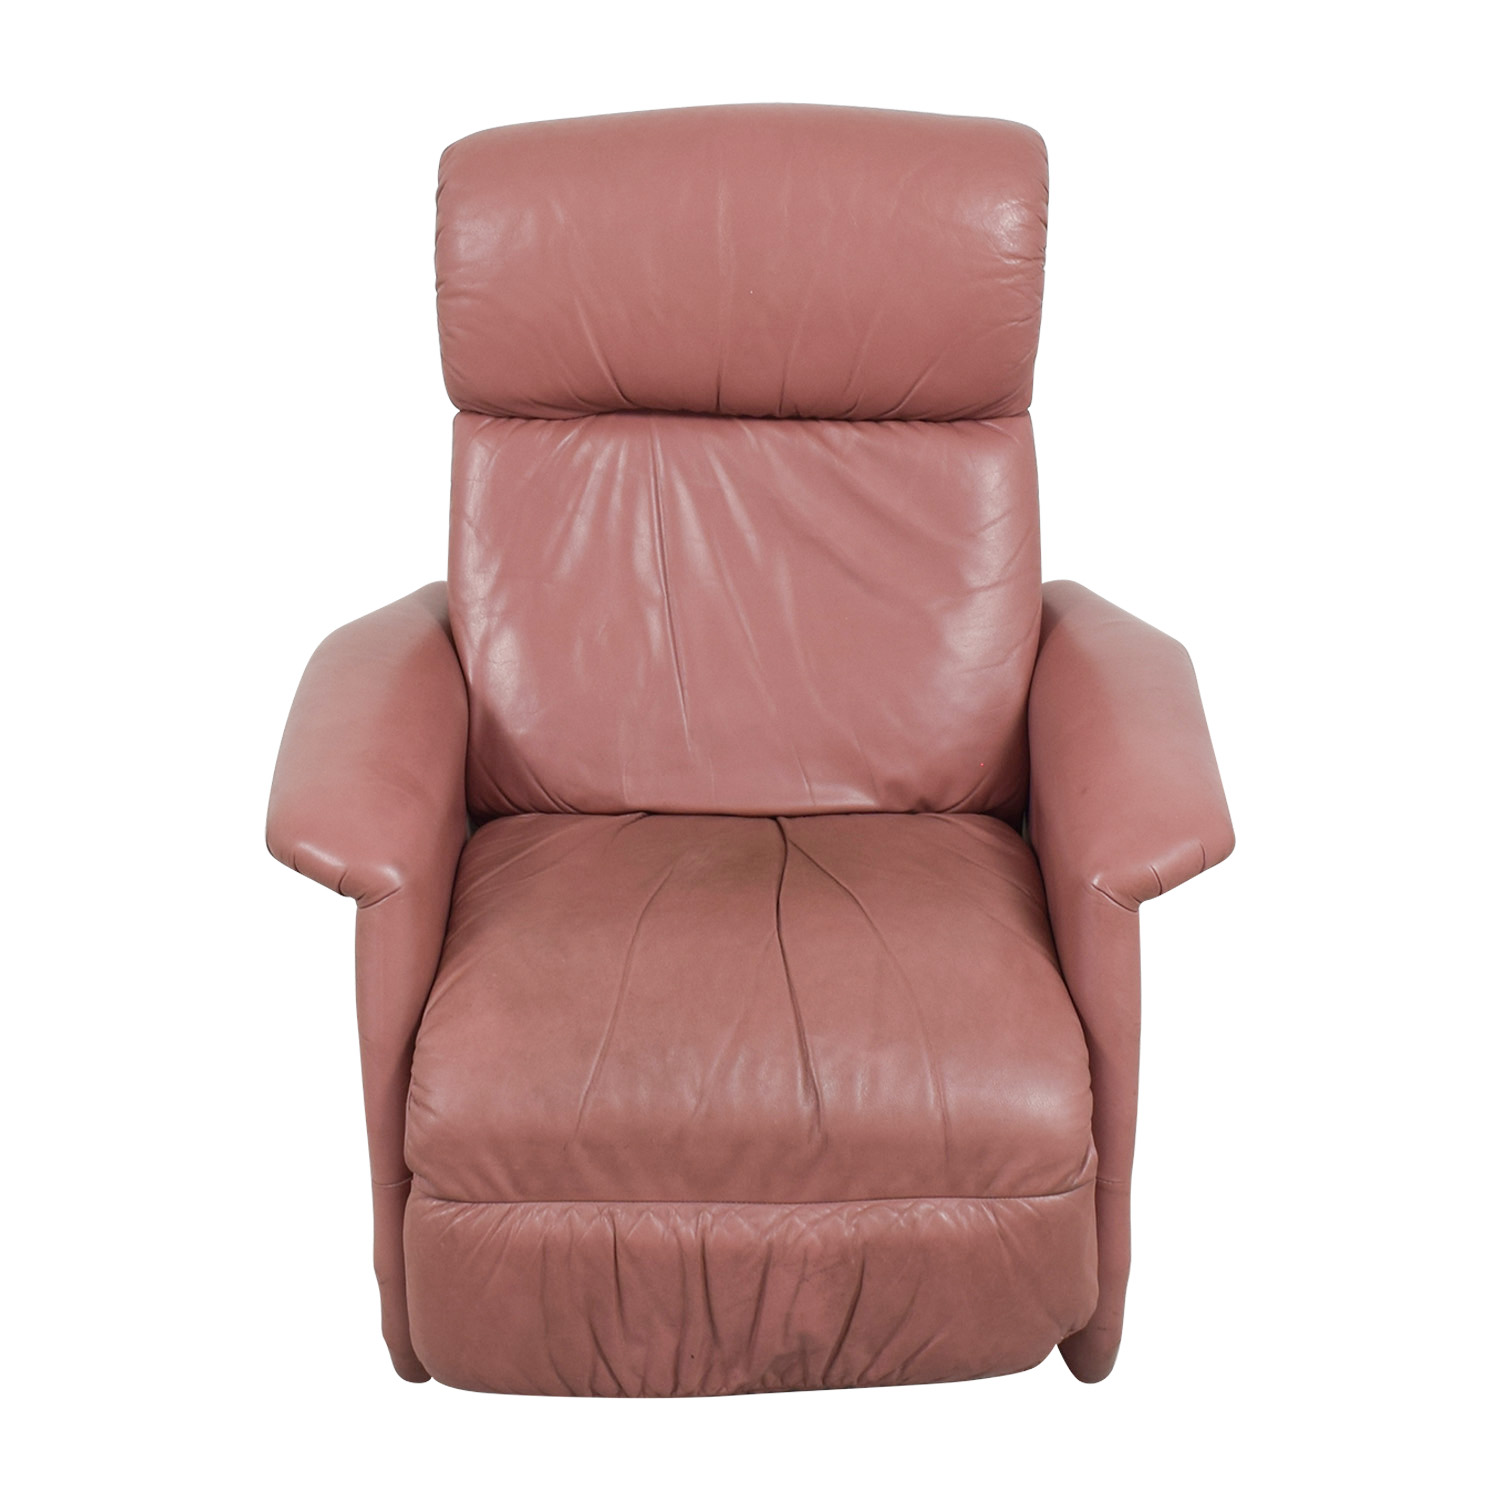 buy  Salmon Leather Recliner online